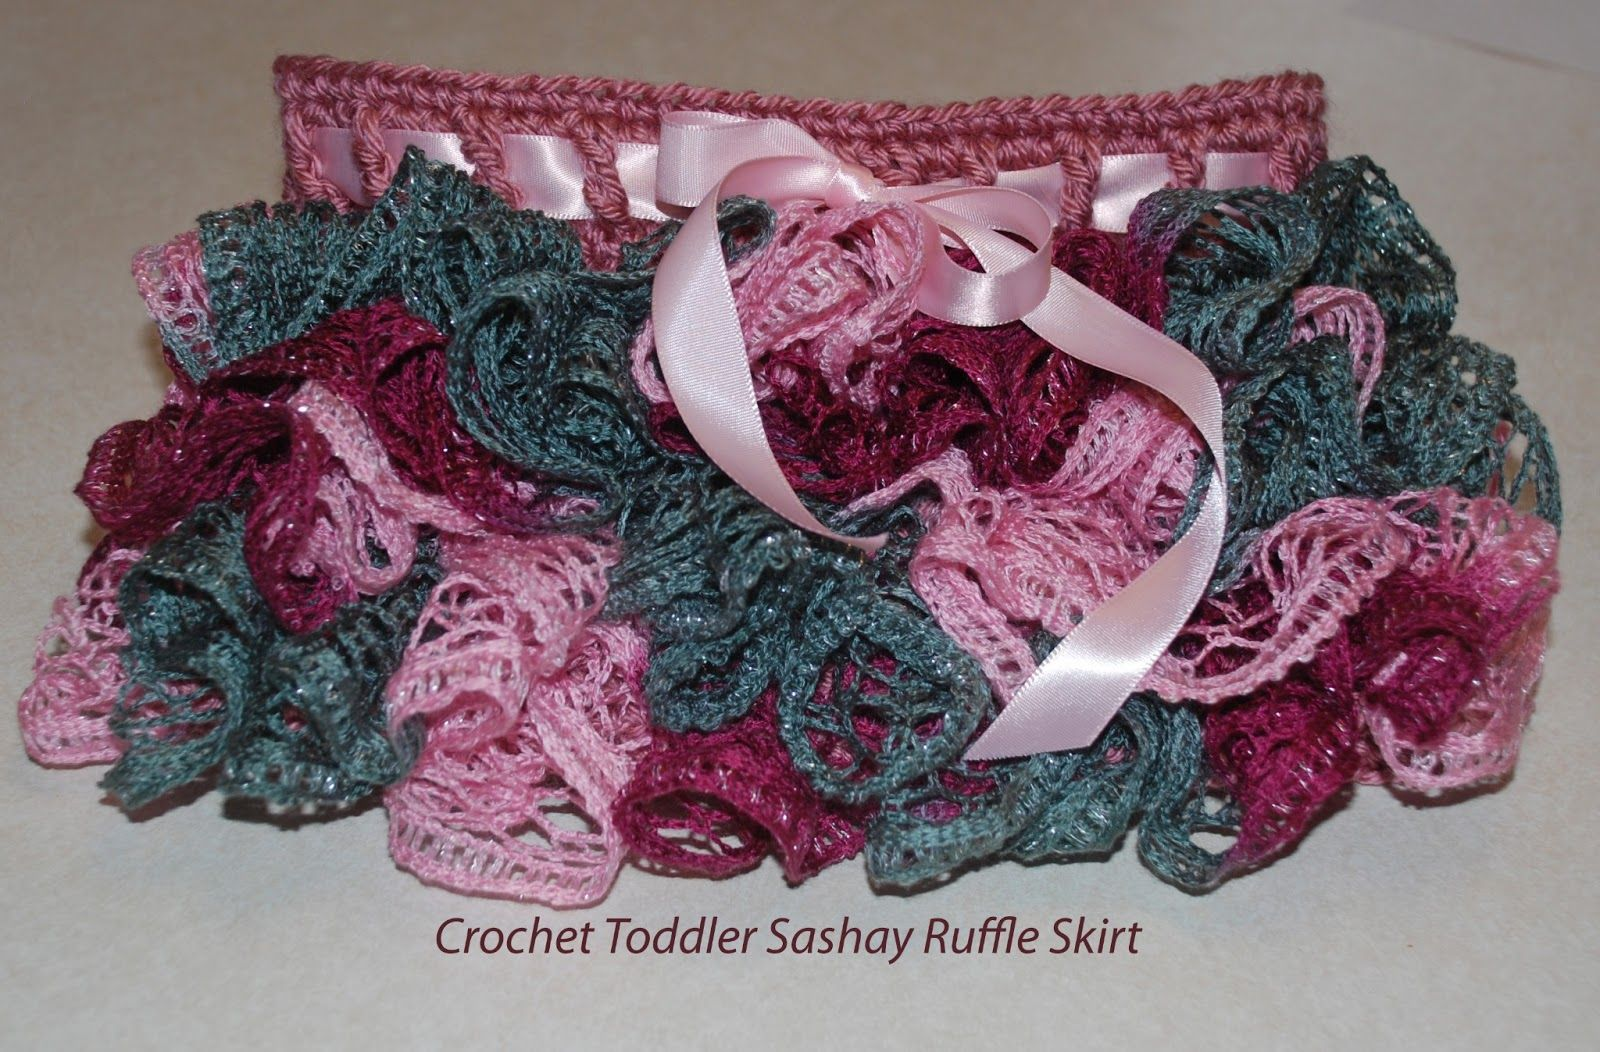 Crochet Sashay Ruffle toddler Skirt. What a clever idea to use ...